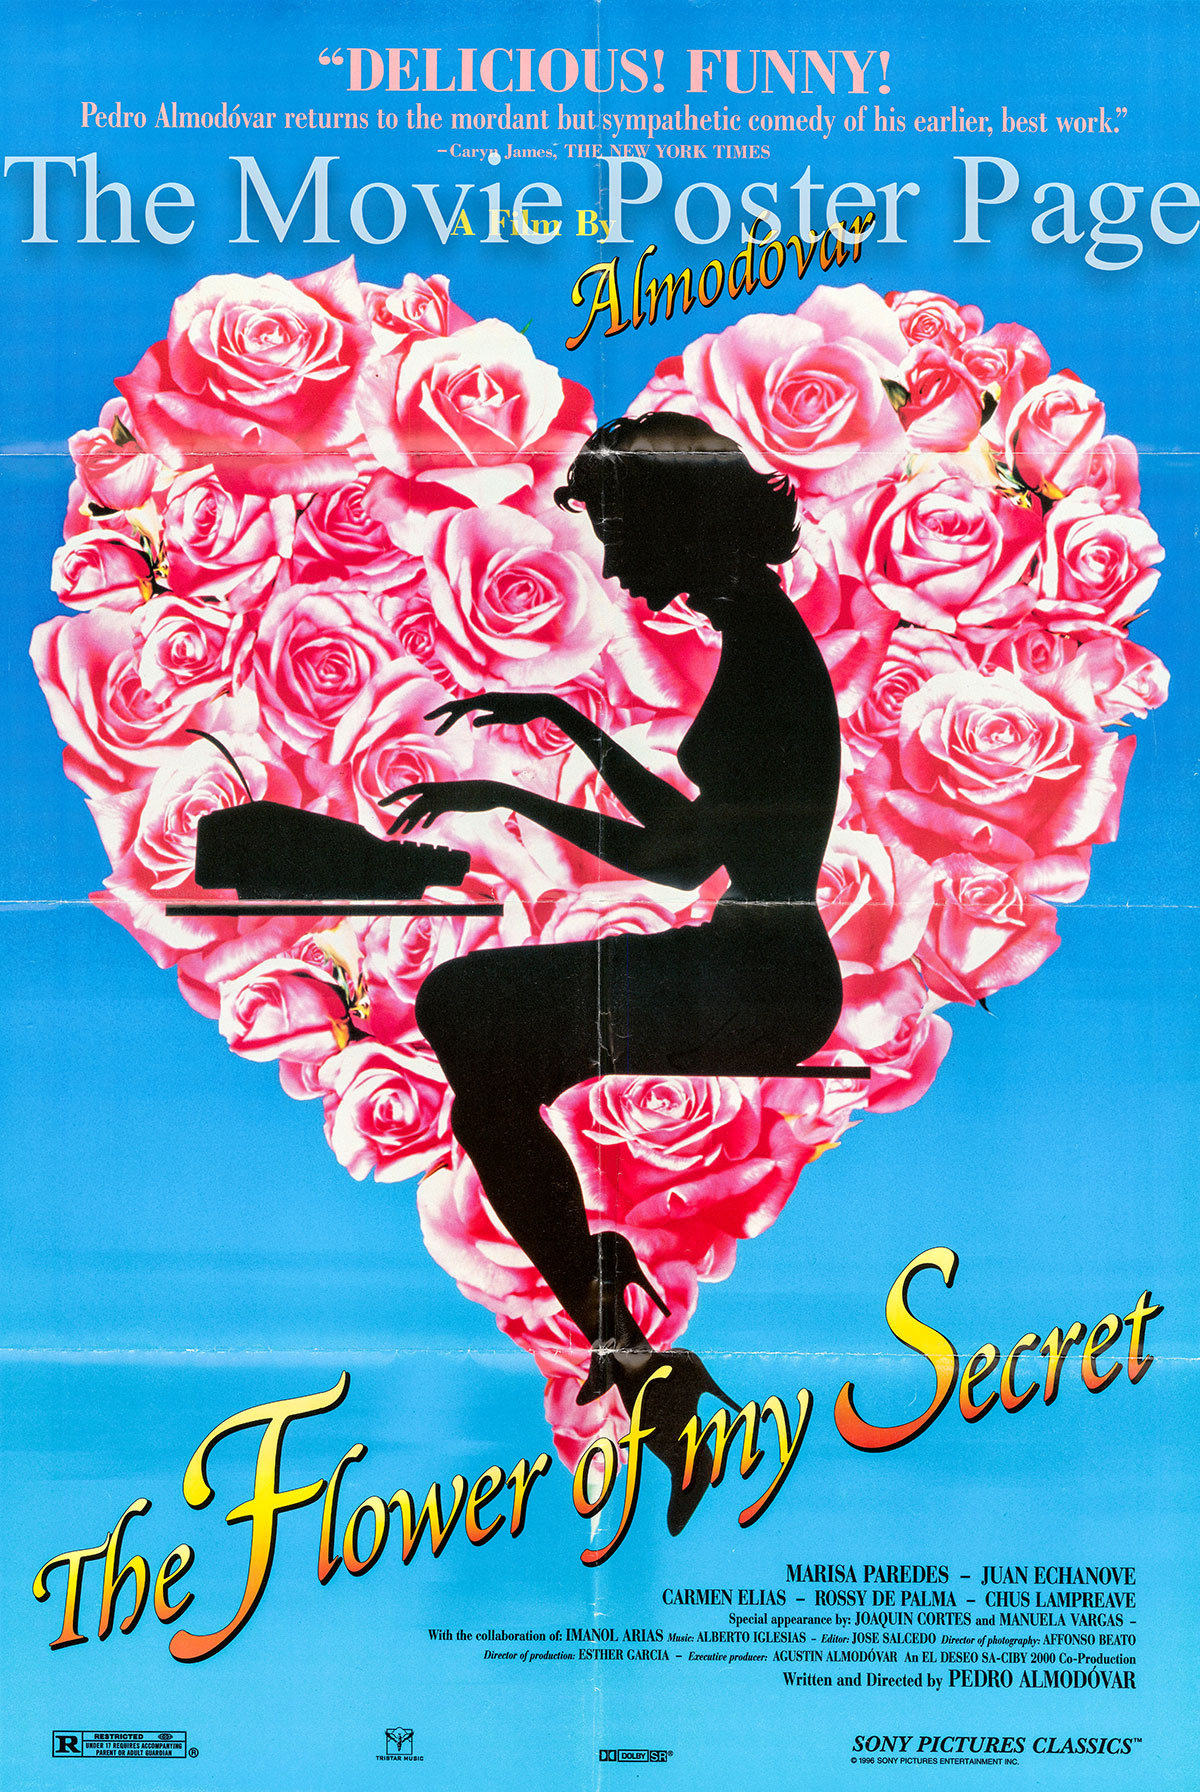 Pictured is a US one-sheet poster for the 1995 Pedro Almodovar film The Flower of My secret starring Marisa Paredes.